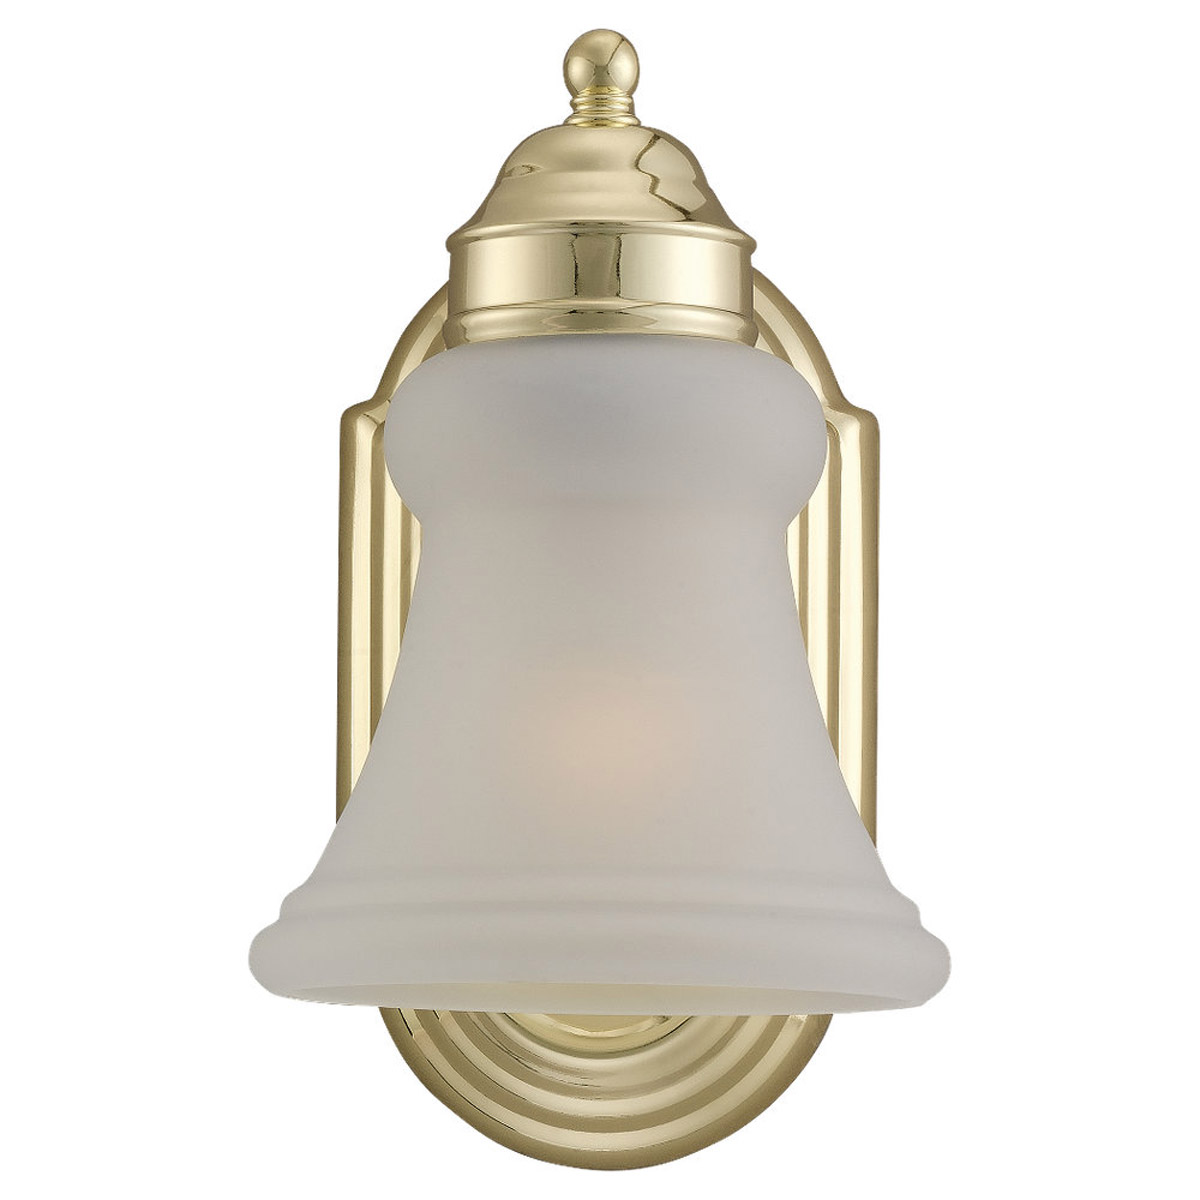 Sea Gull Lighting Evansville 1 Light Wall / Bath / Vanity in Polished Brass 44225-02 photo